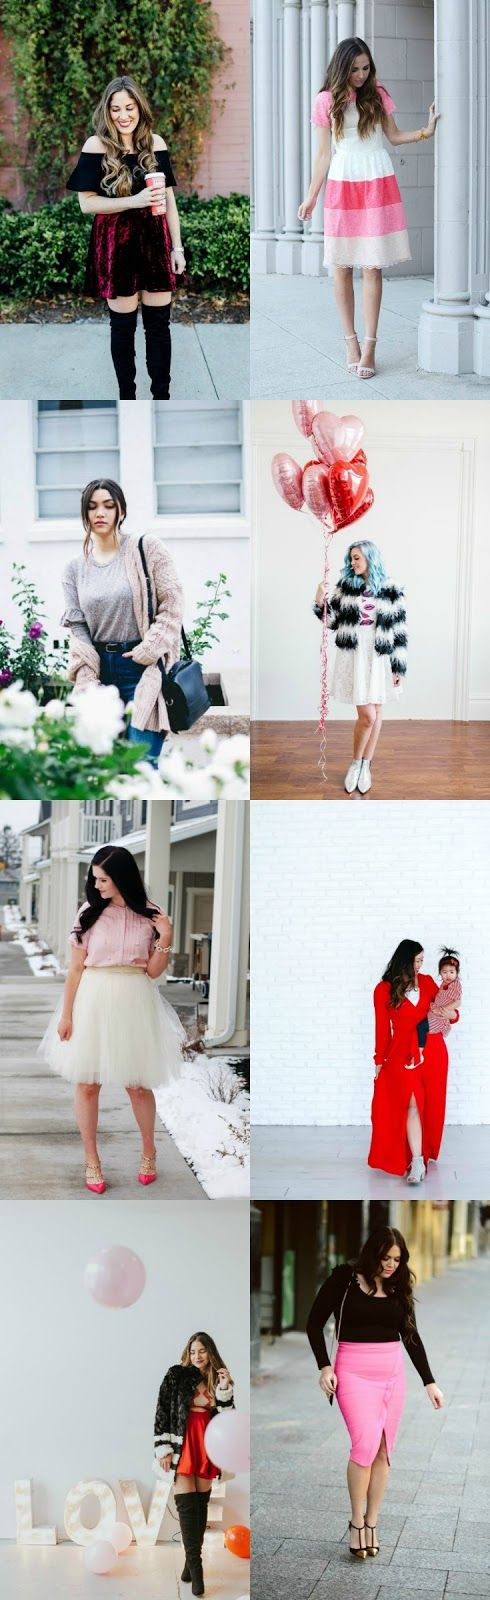 Valentine's Day outfit ideas casual   date night outfit ideas   romantic outfit ideas   mommy and me outfits